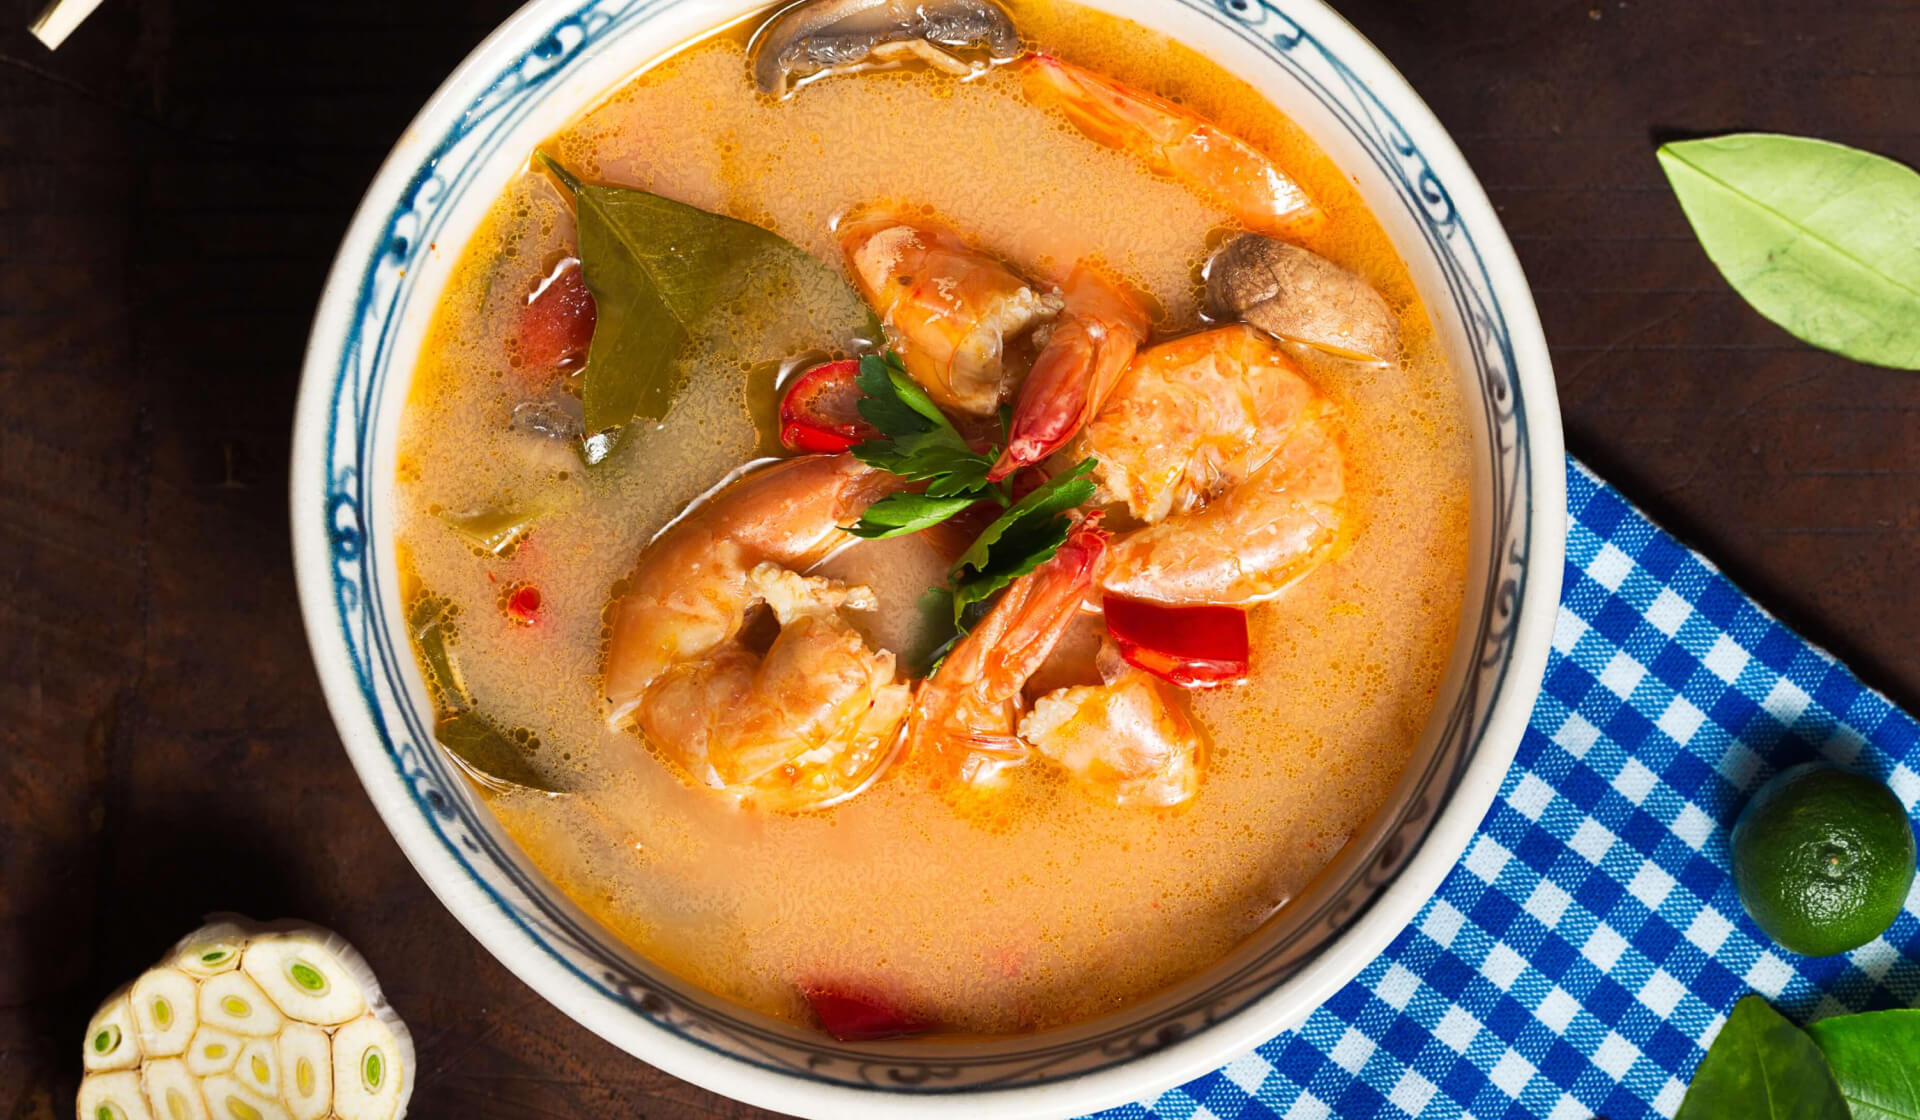 Thai tom yum soup with a redish broth, shrimp, mushrooms, Thai basil, and parsley